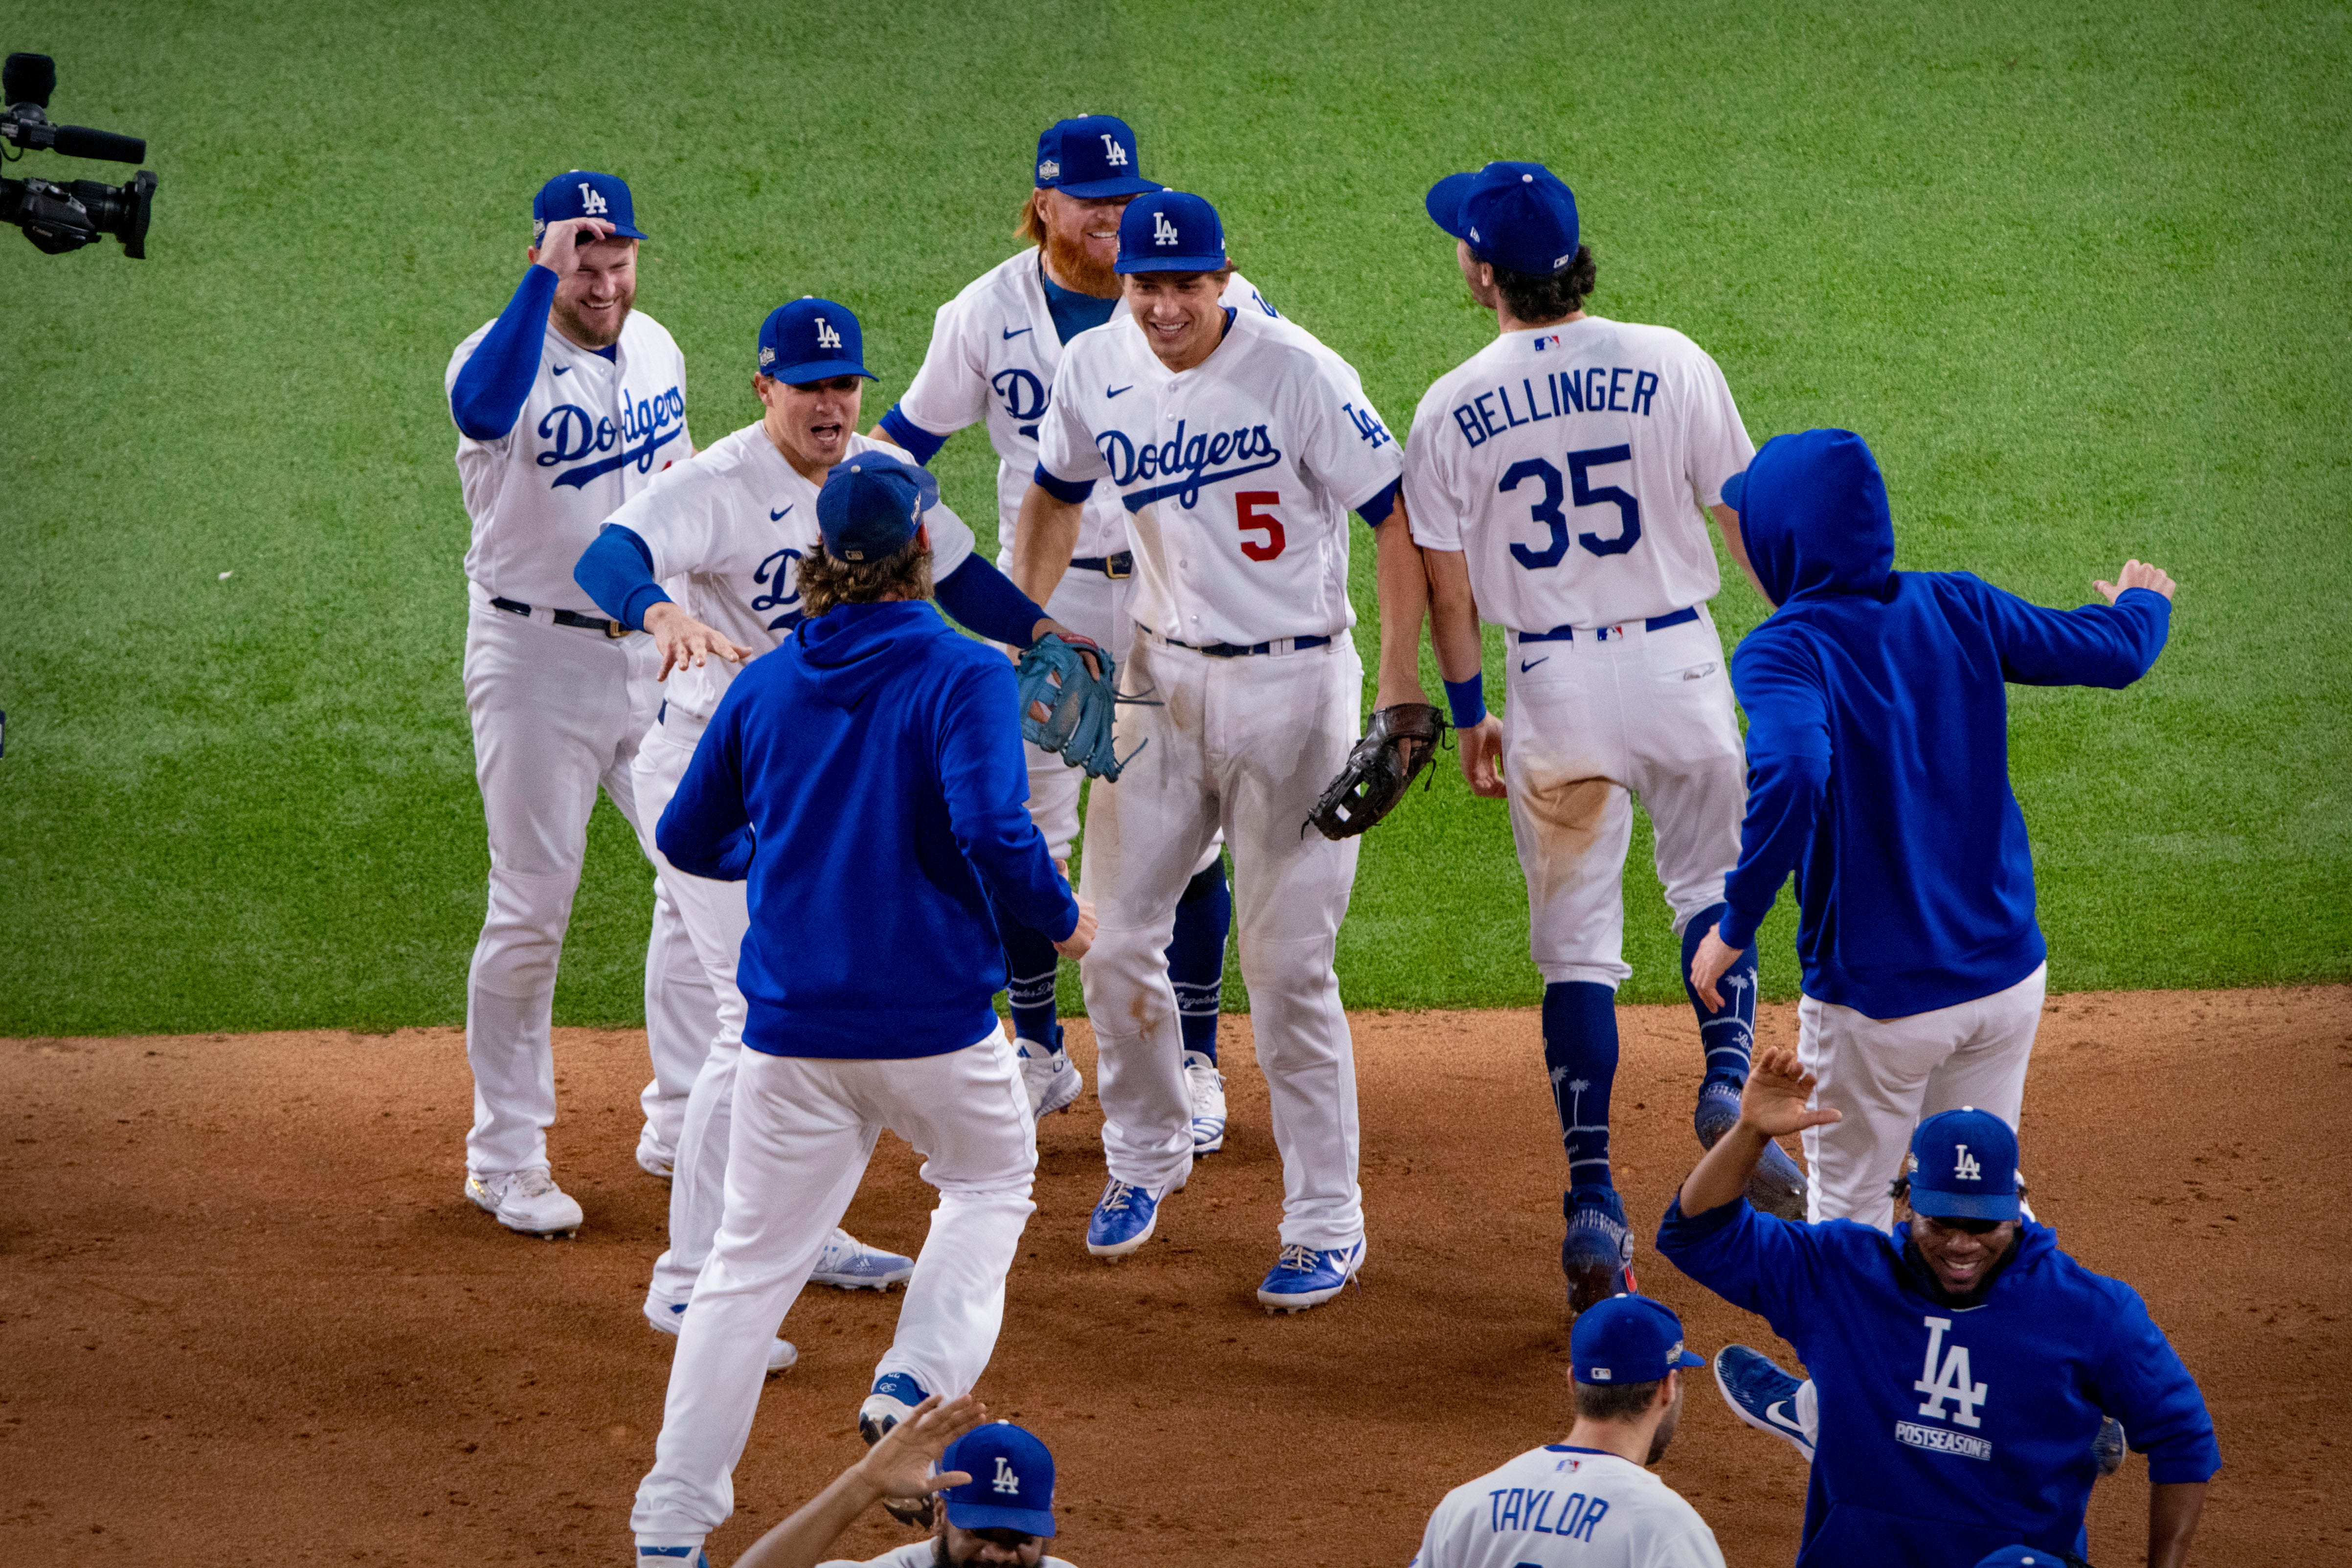 2020 World Series preview: Dodgers-Rays schedule, pitchers, prediction